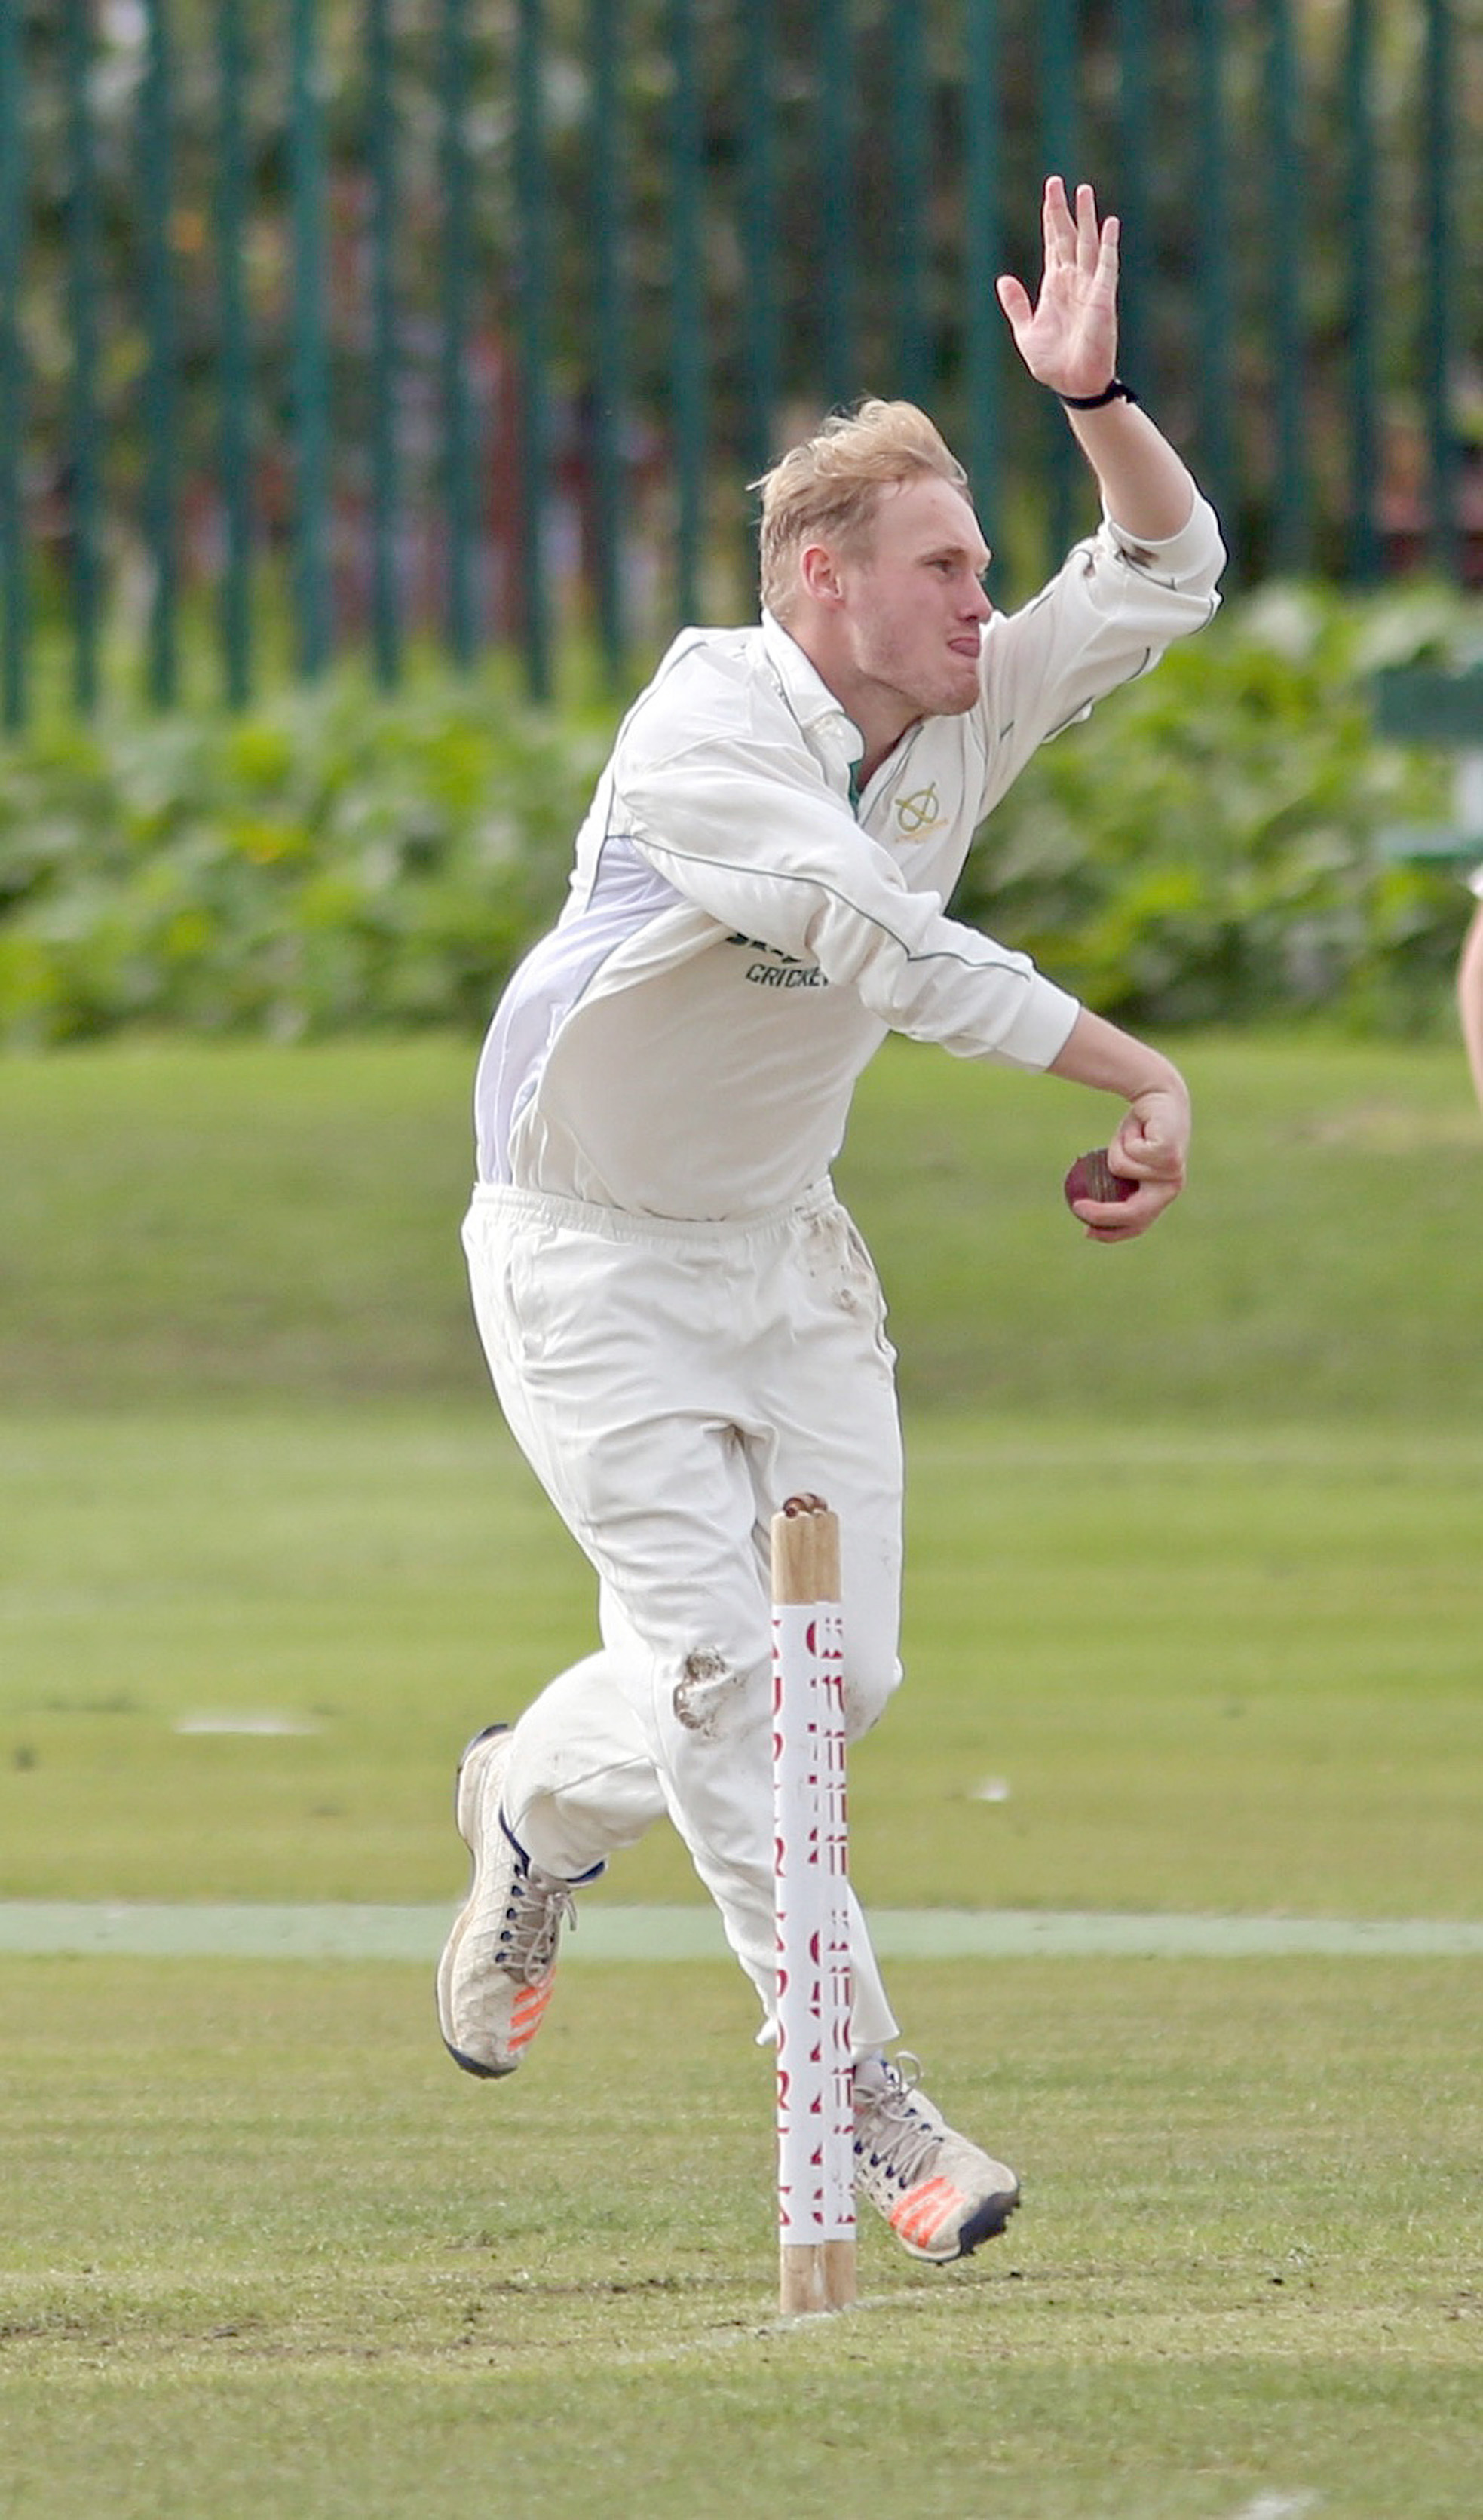 Heaton v Kearsley in the final of the Peter Stafford Trophy held at Farnworth Social Circle cricket Club    Photo: Matt Parkinson bowls for Heaton